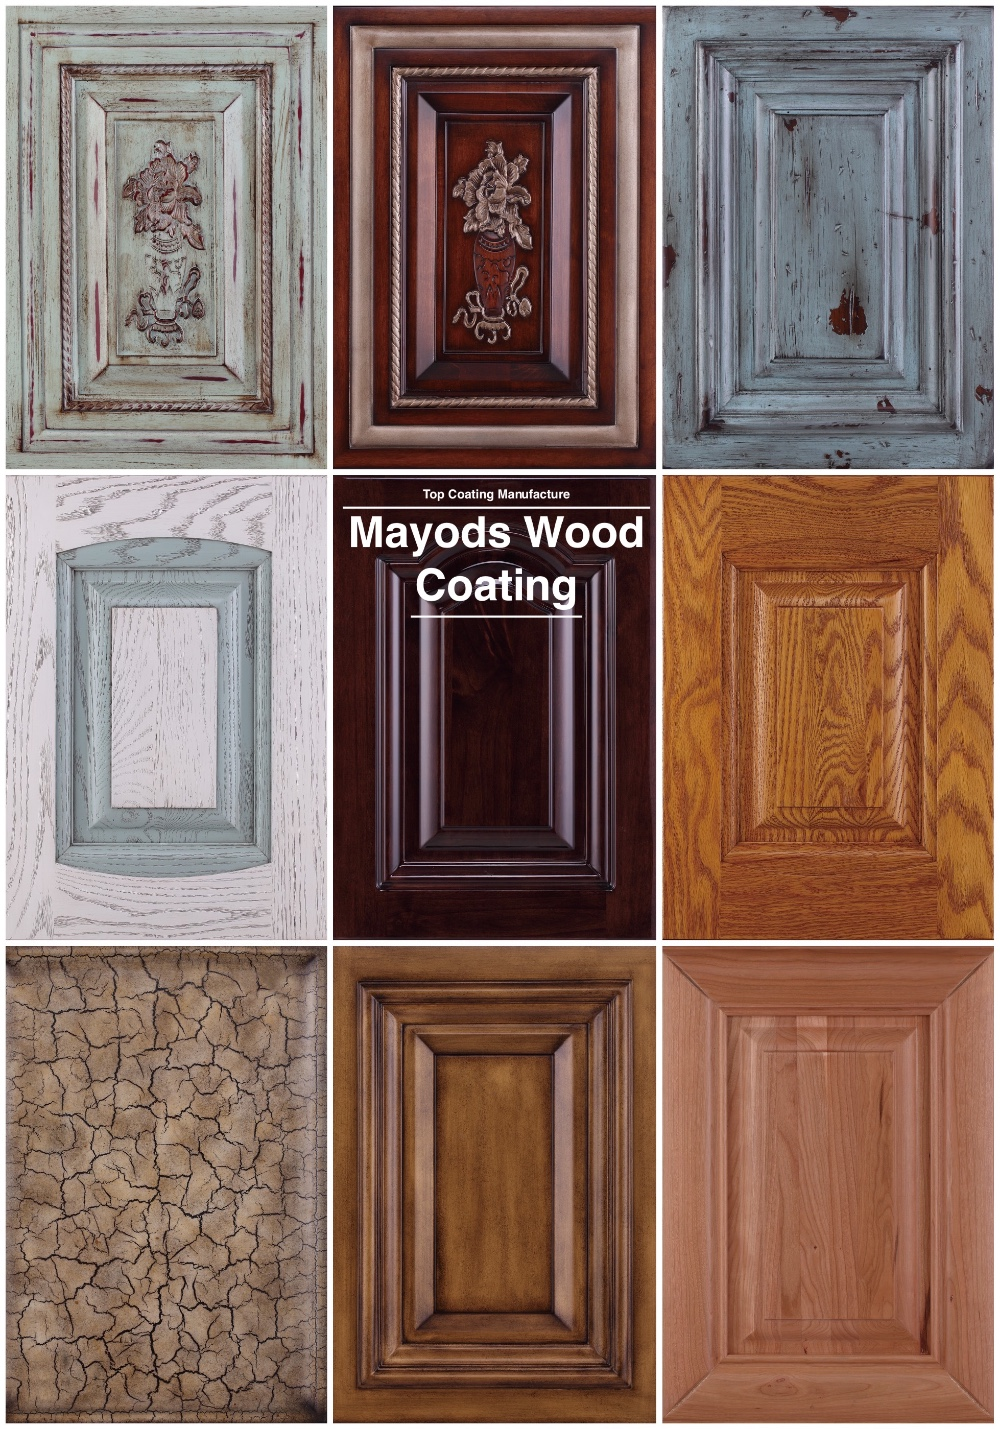 Top Paint brands Maydos Timber floor liquid glass wood finishes